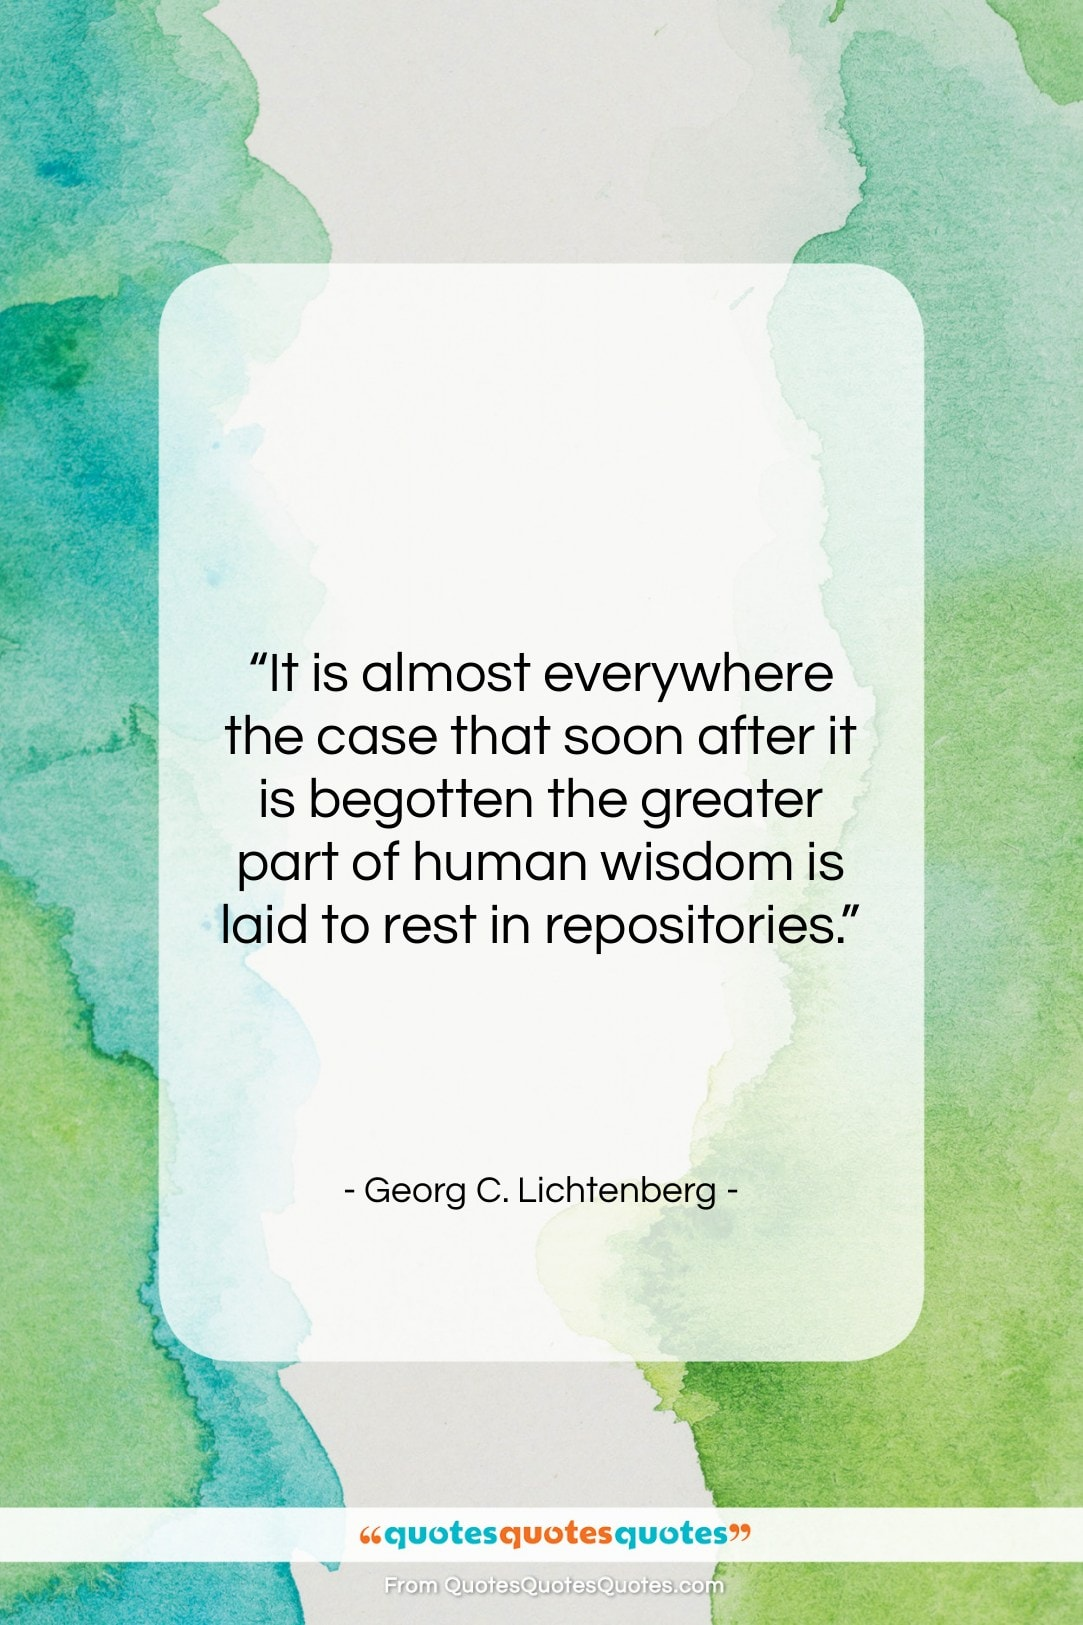 """Georg C. Lichtenberg quote: """"It is almost everywhere the case that…""""- at QuotesQuotesQuotes.com"""